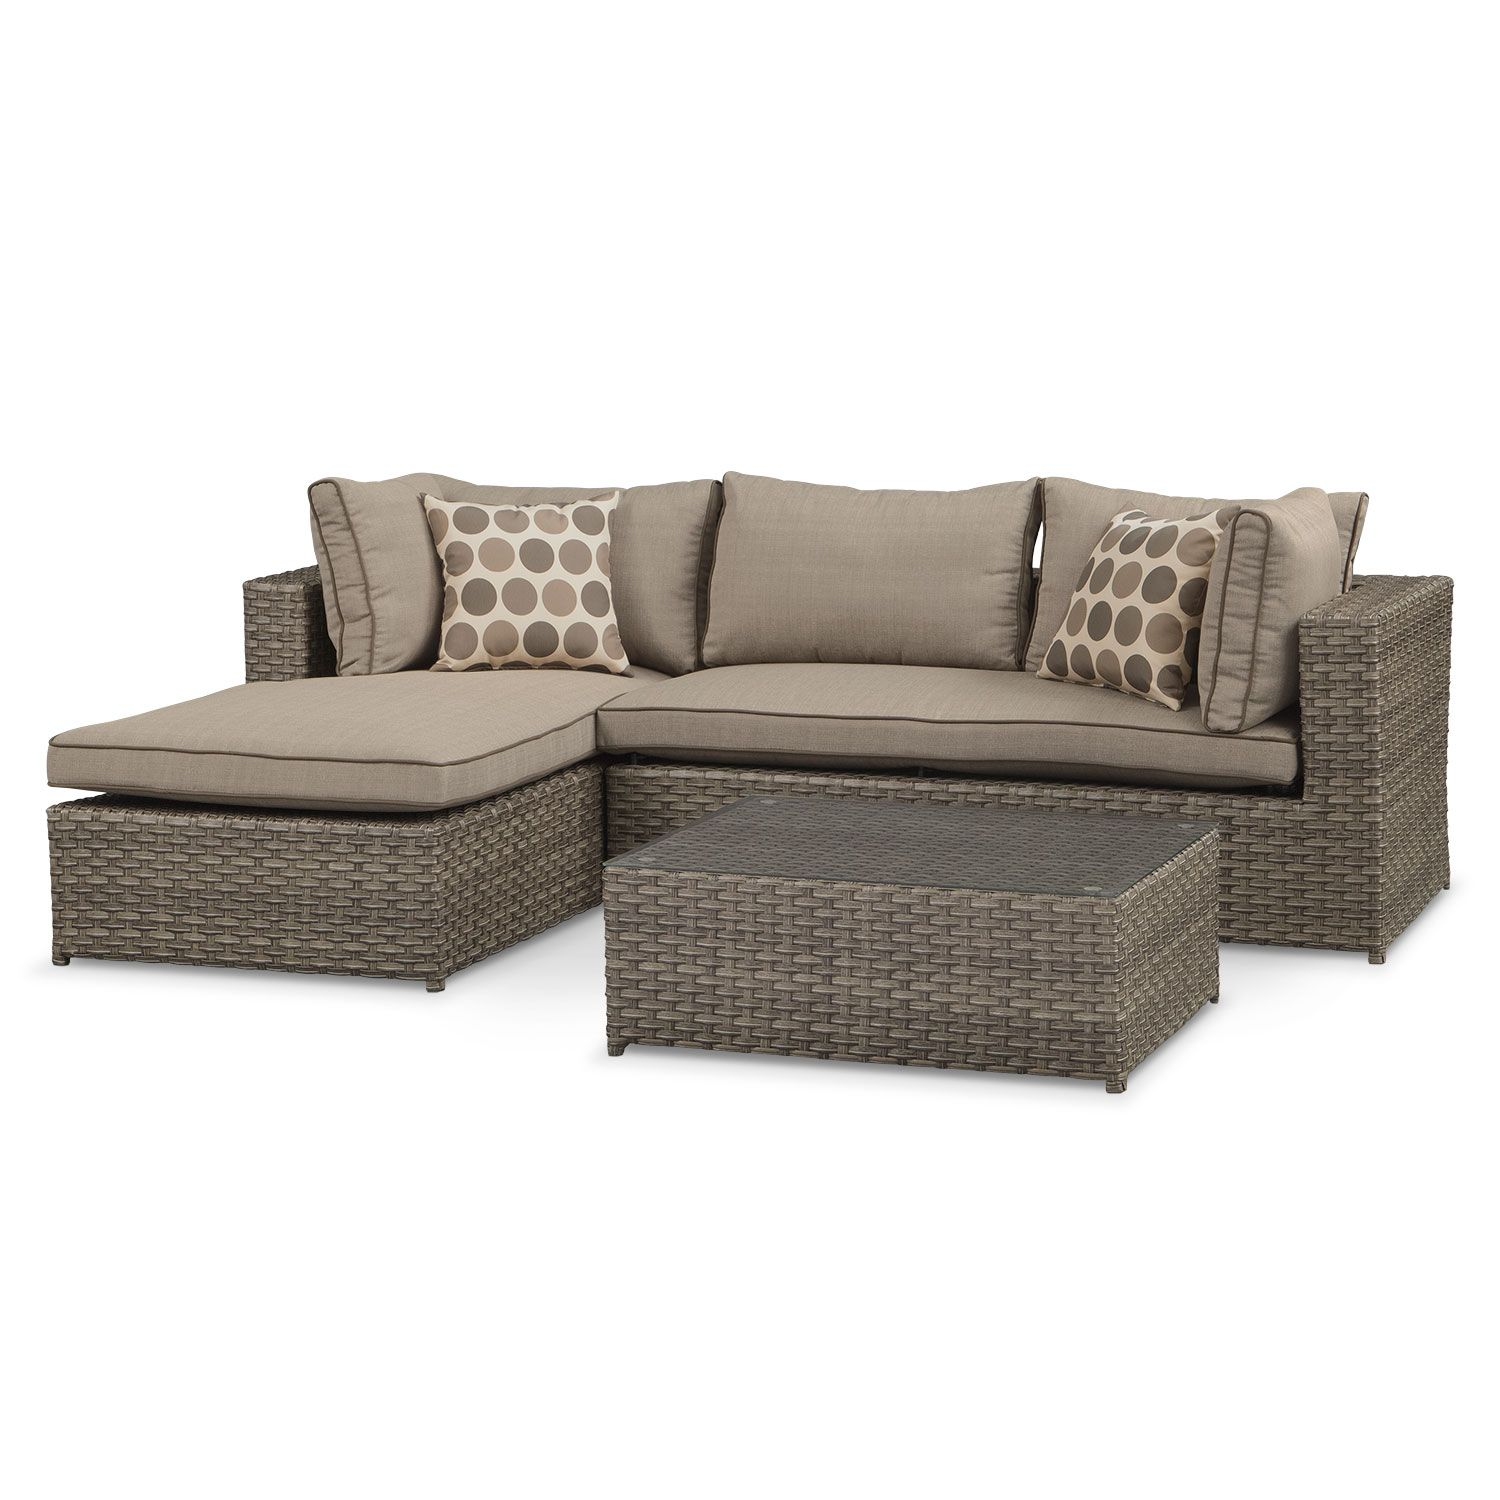 Outdoor Furniture Naples 2 Piece Left Facing Outdoor Sectional